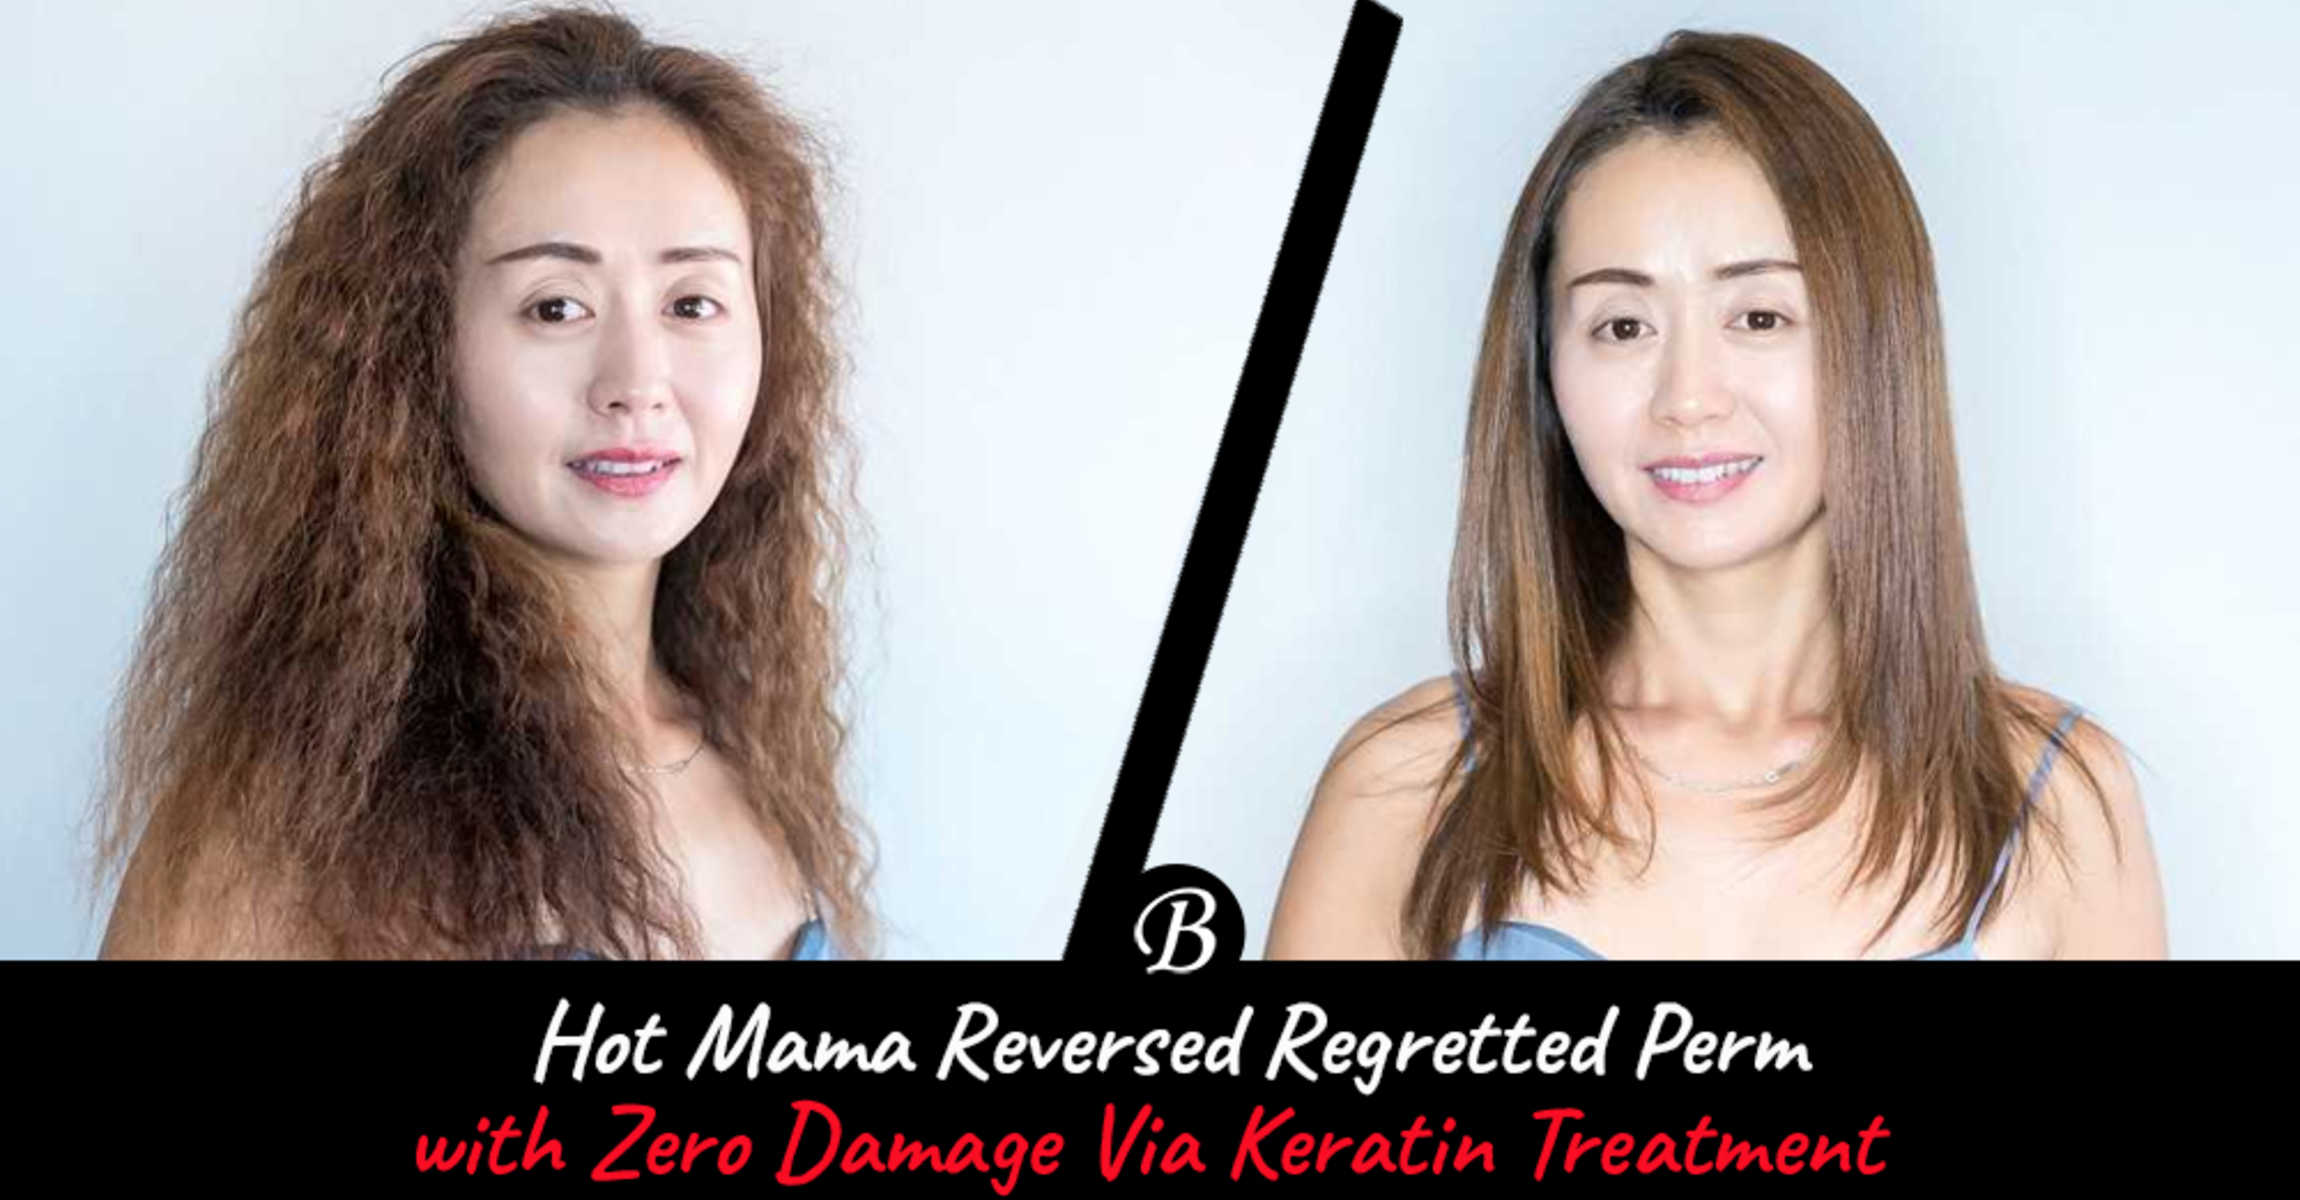 This Keratin Treatment Gave Hot Mama JZ Straight Hair After Regretting Perming Her Hair